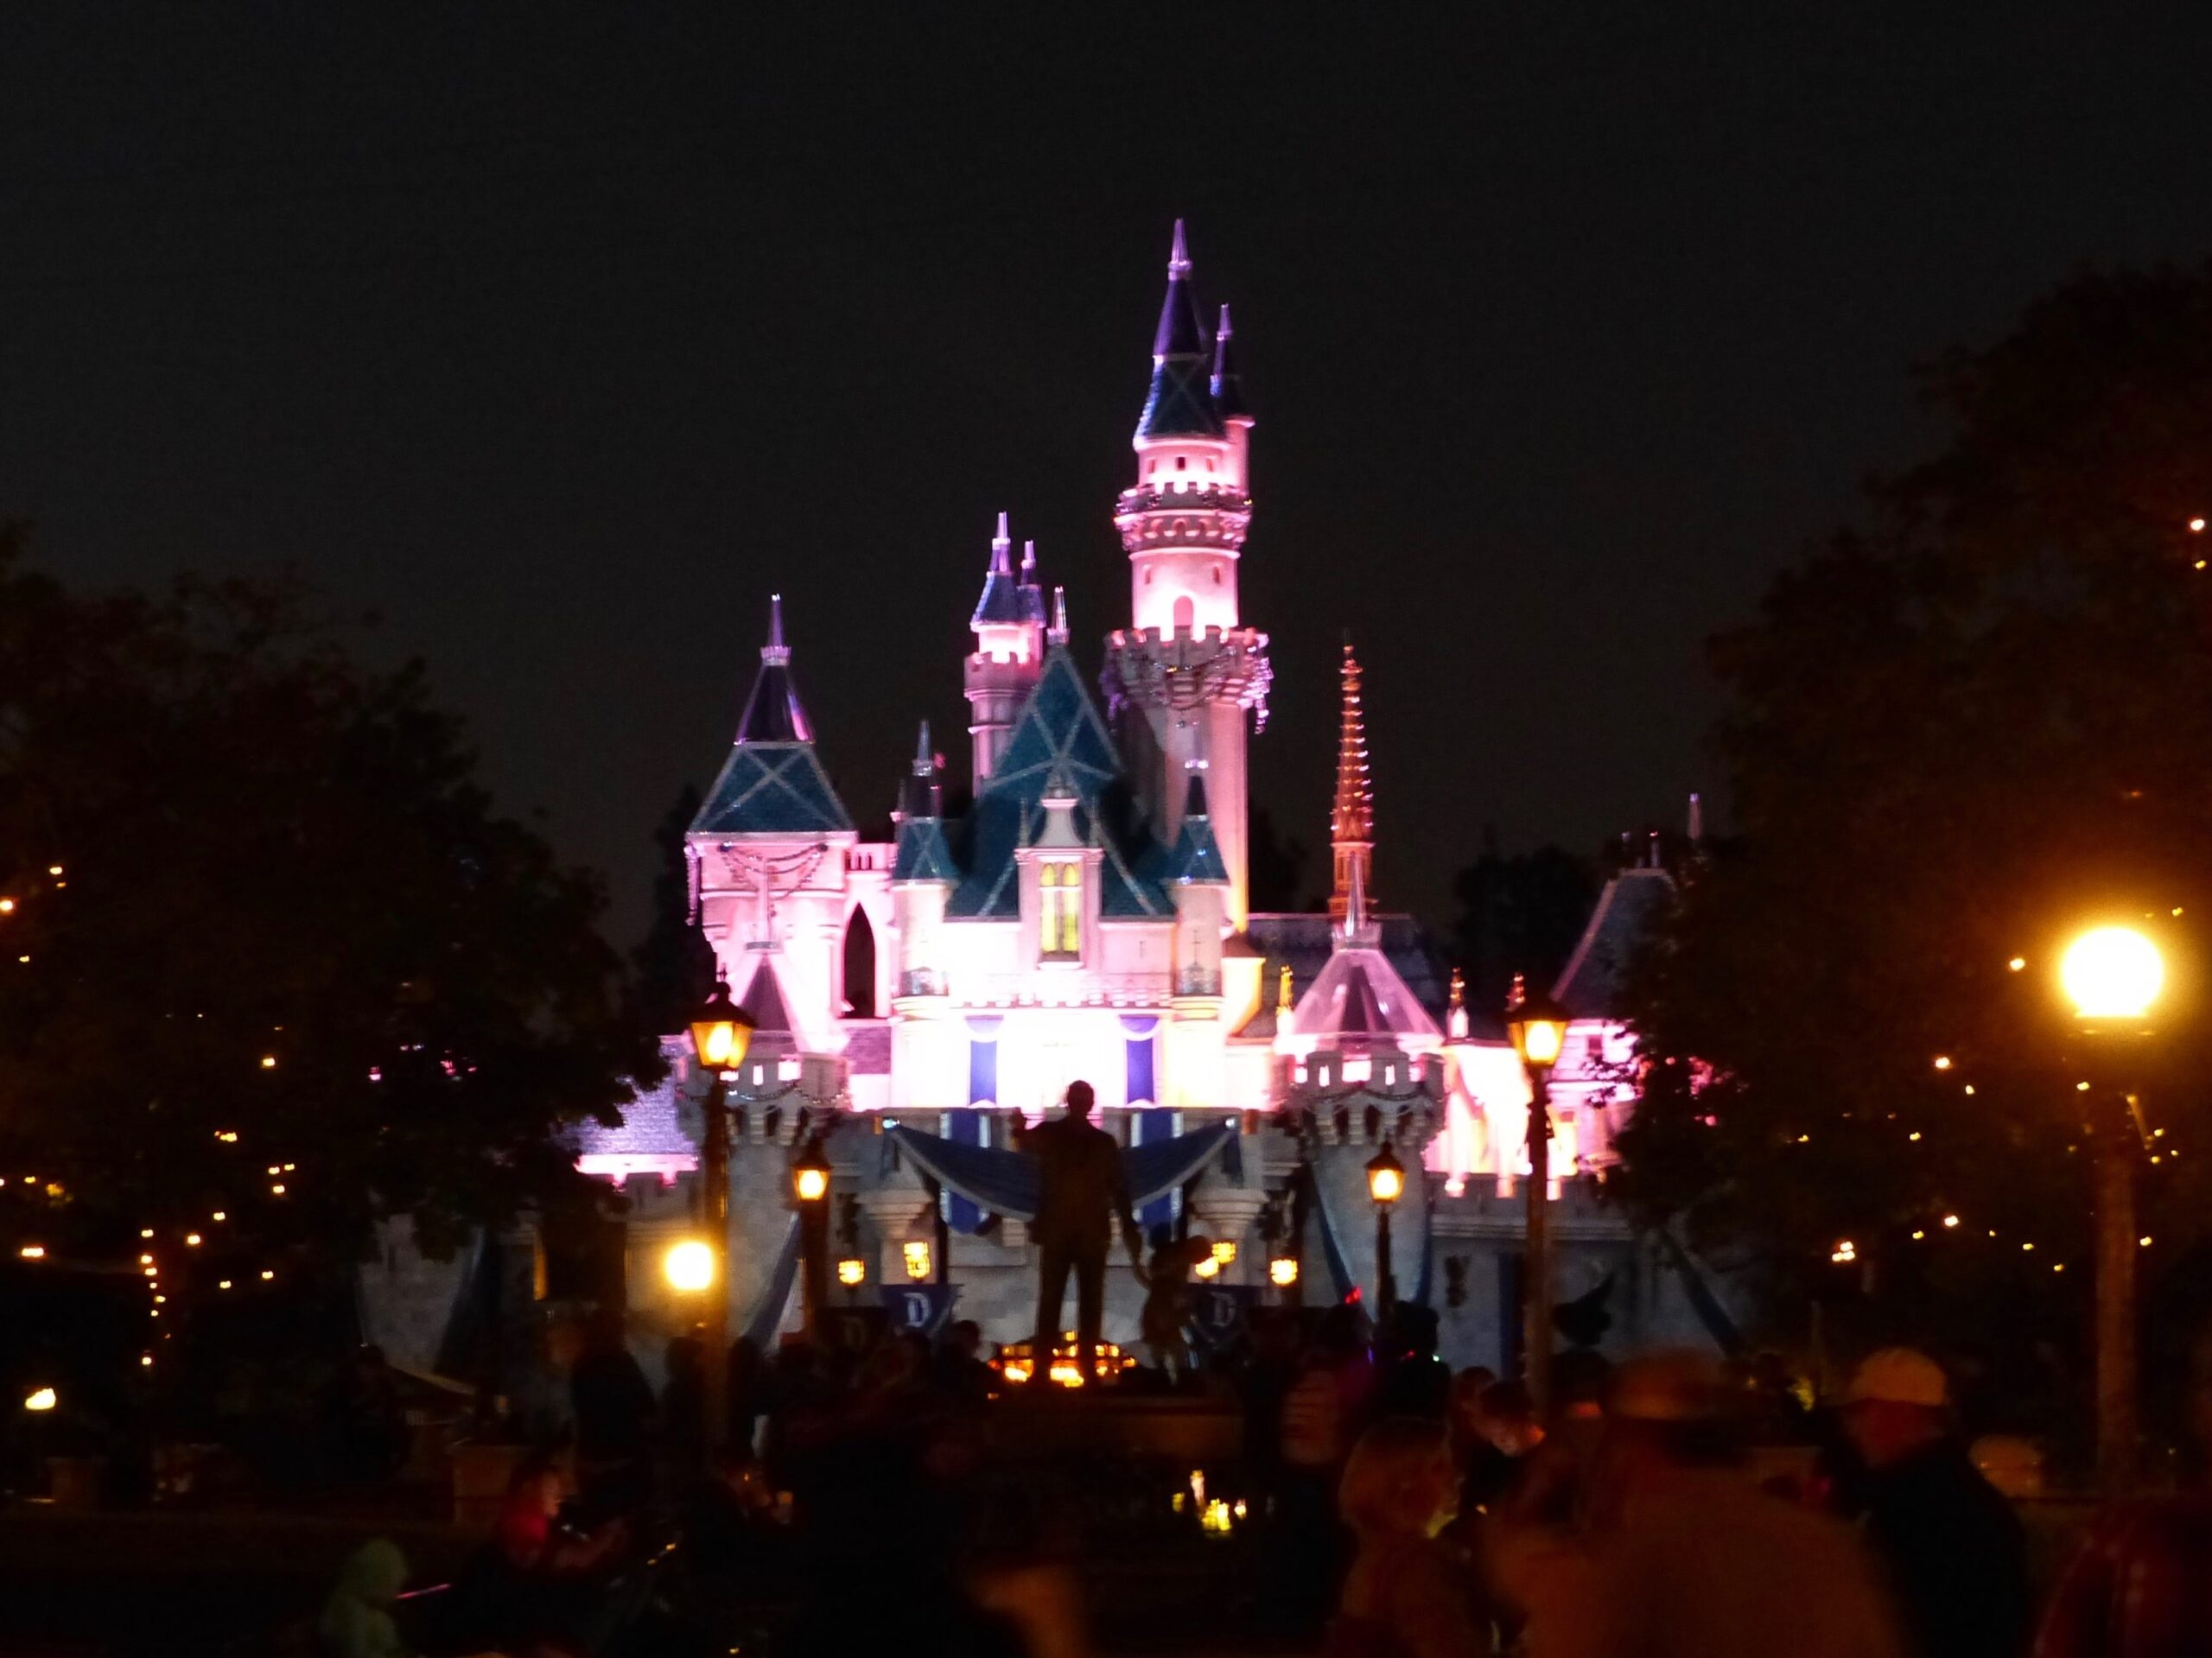 Disneyland-Schloss bei Nacht in Los Angeles Anaheim USA